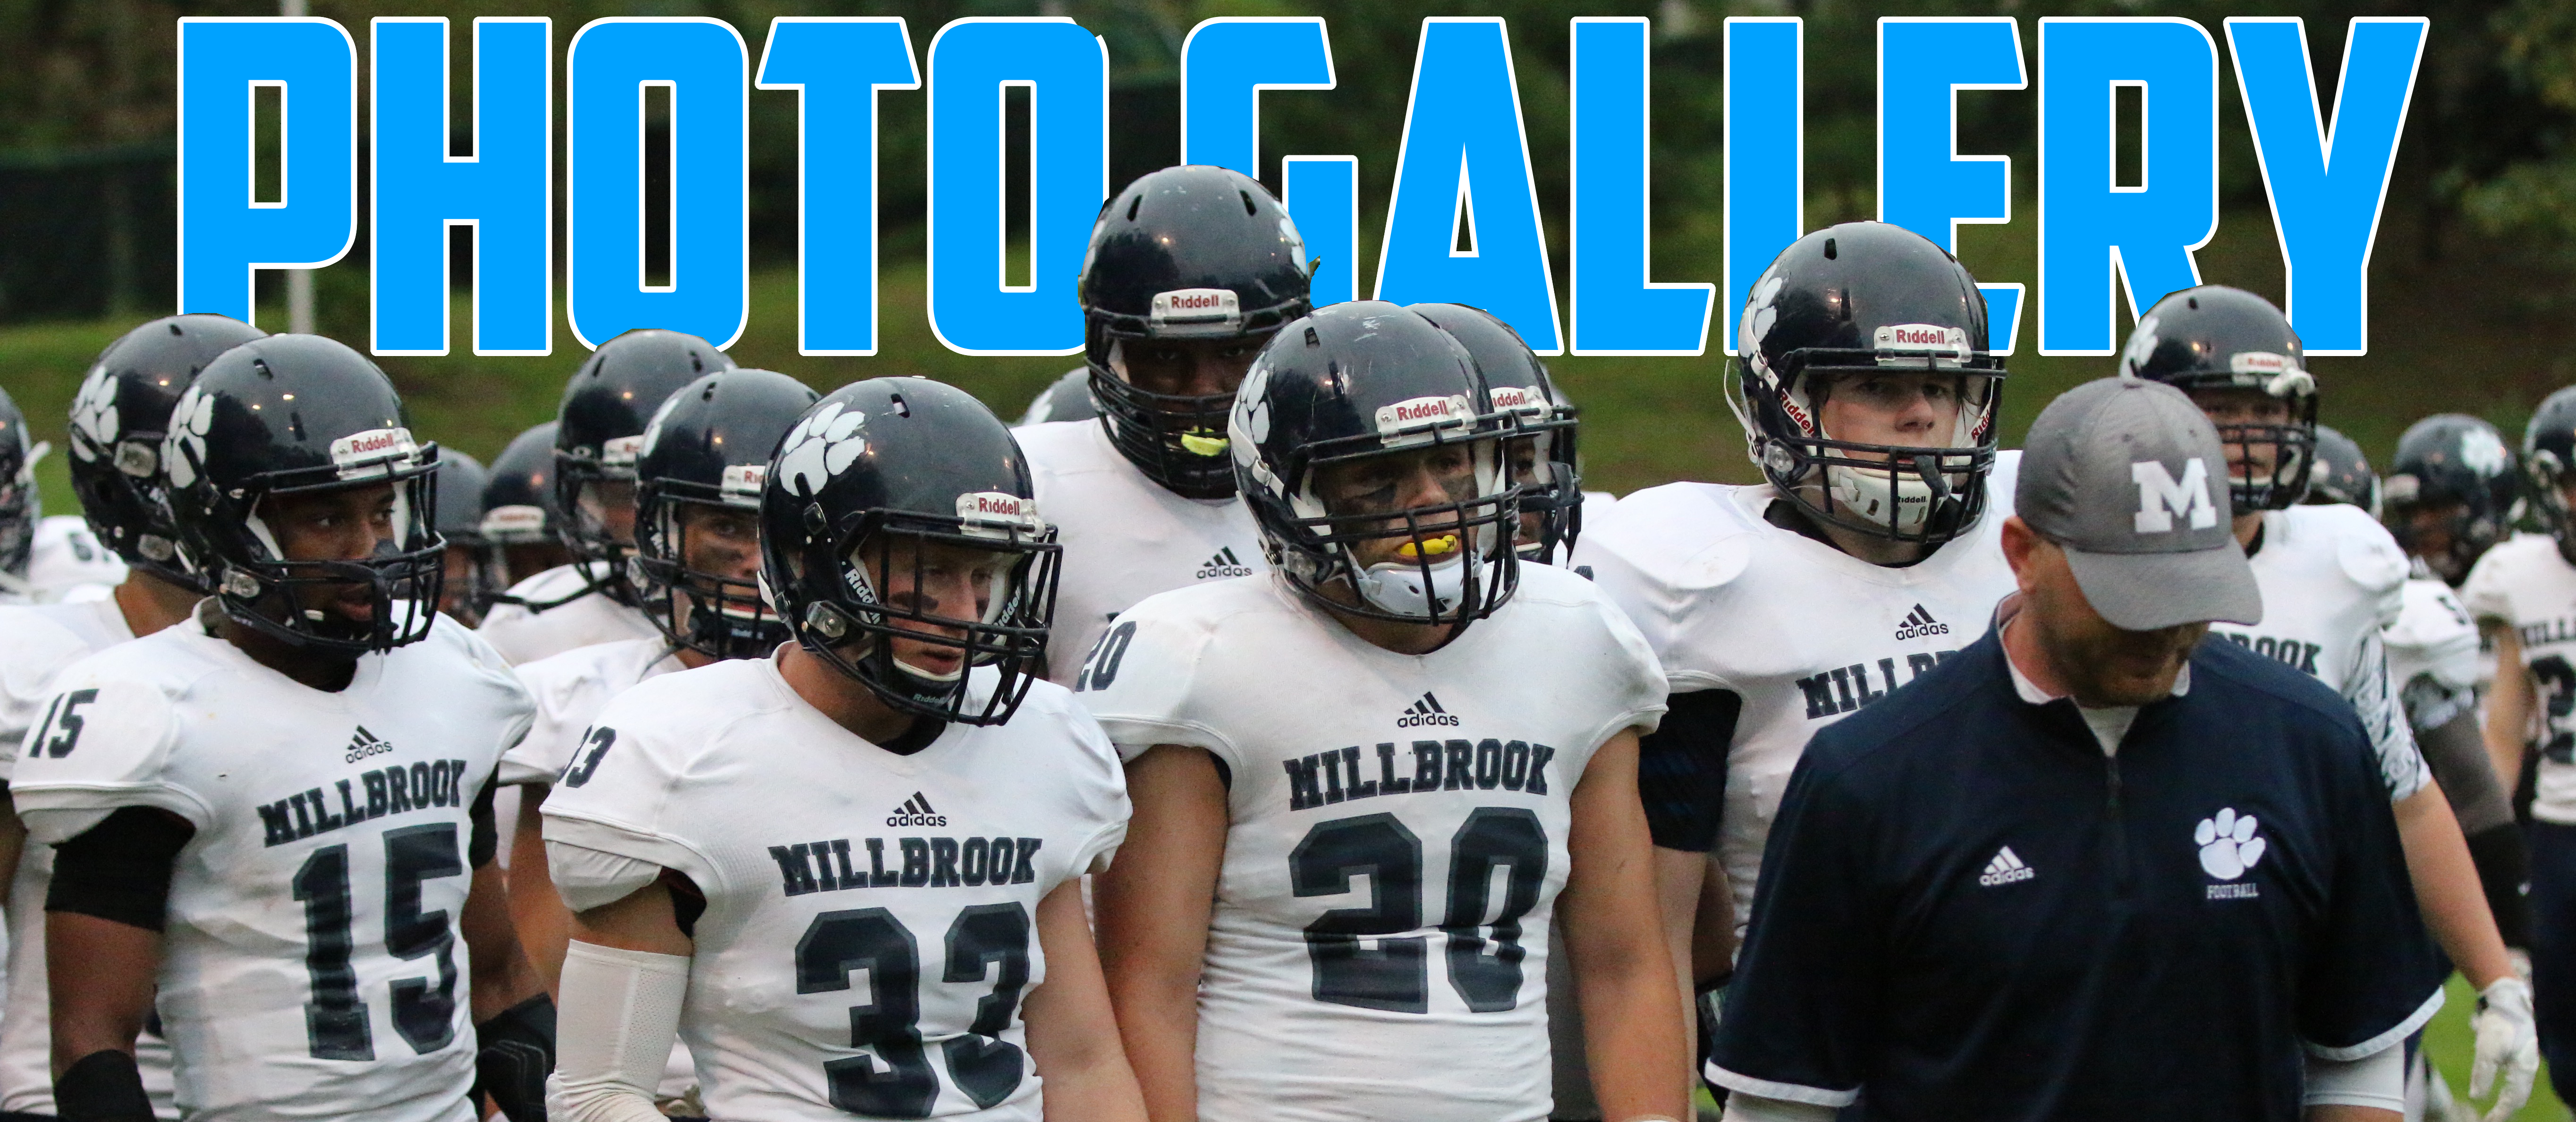 GALLERY: Millbrook at Wake Forest